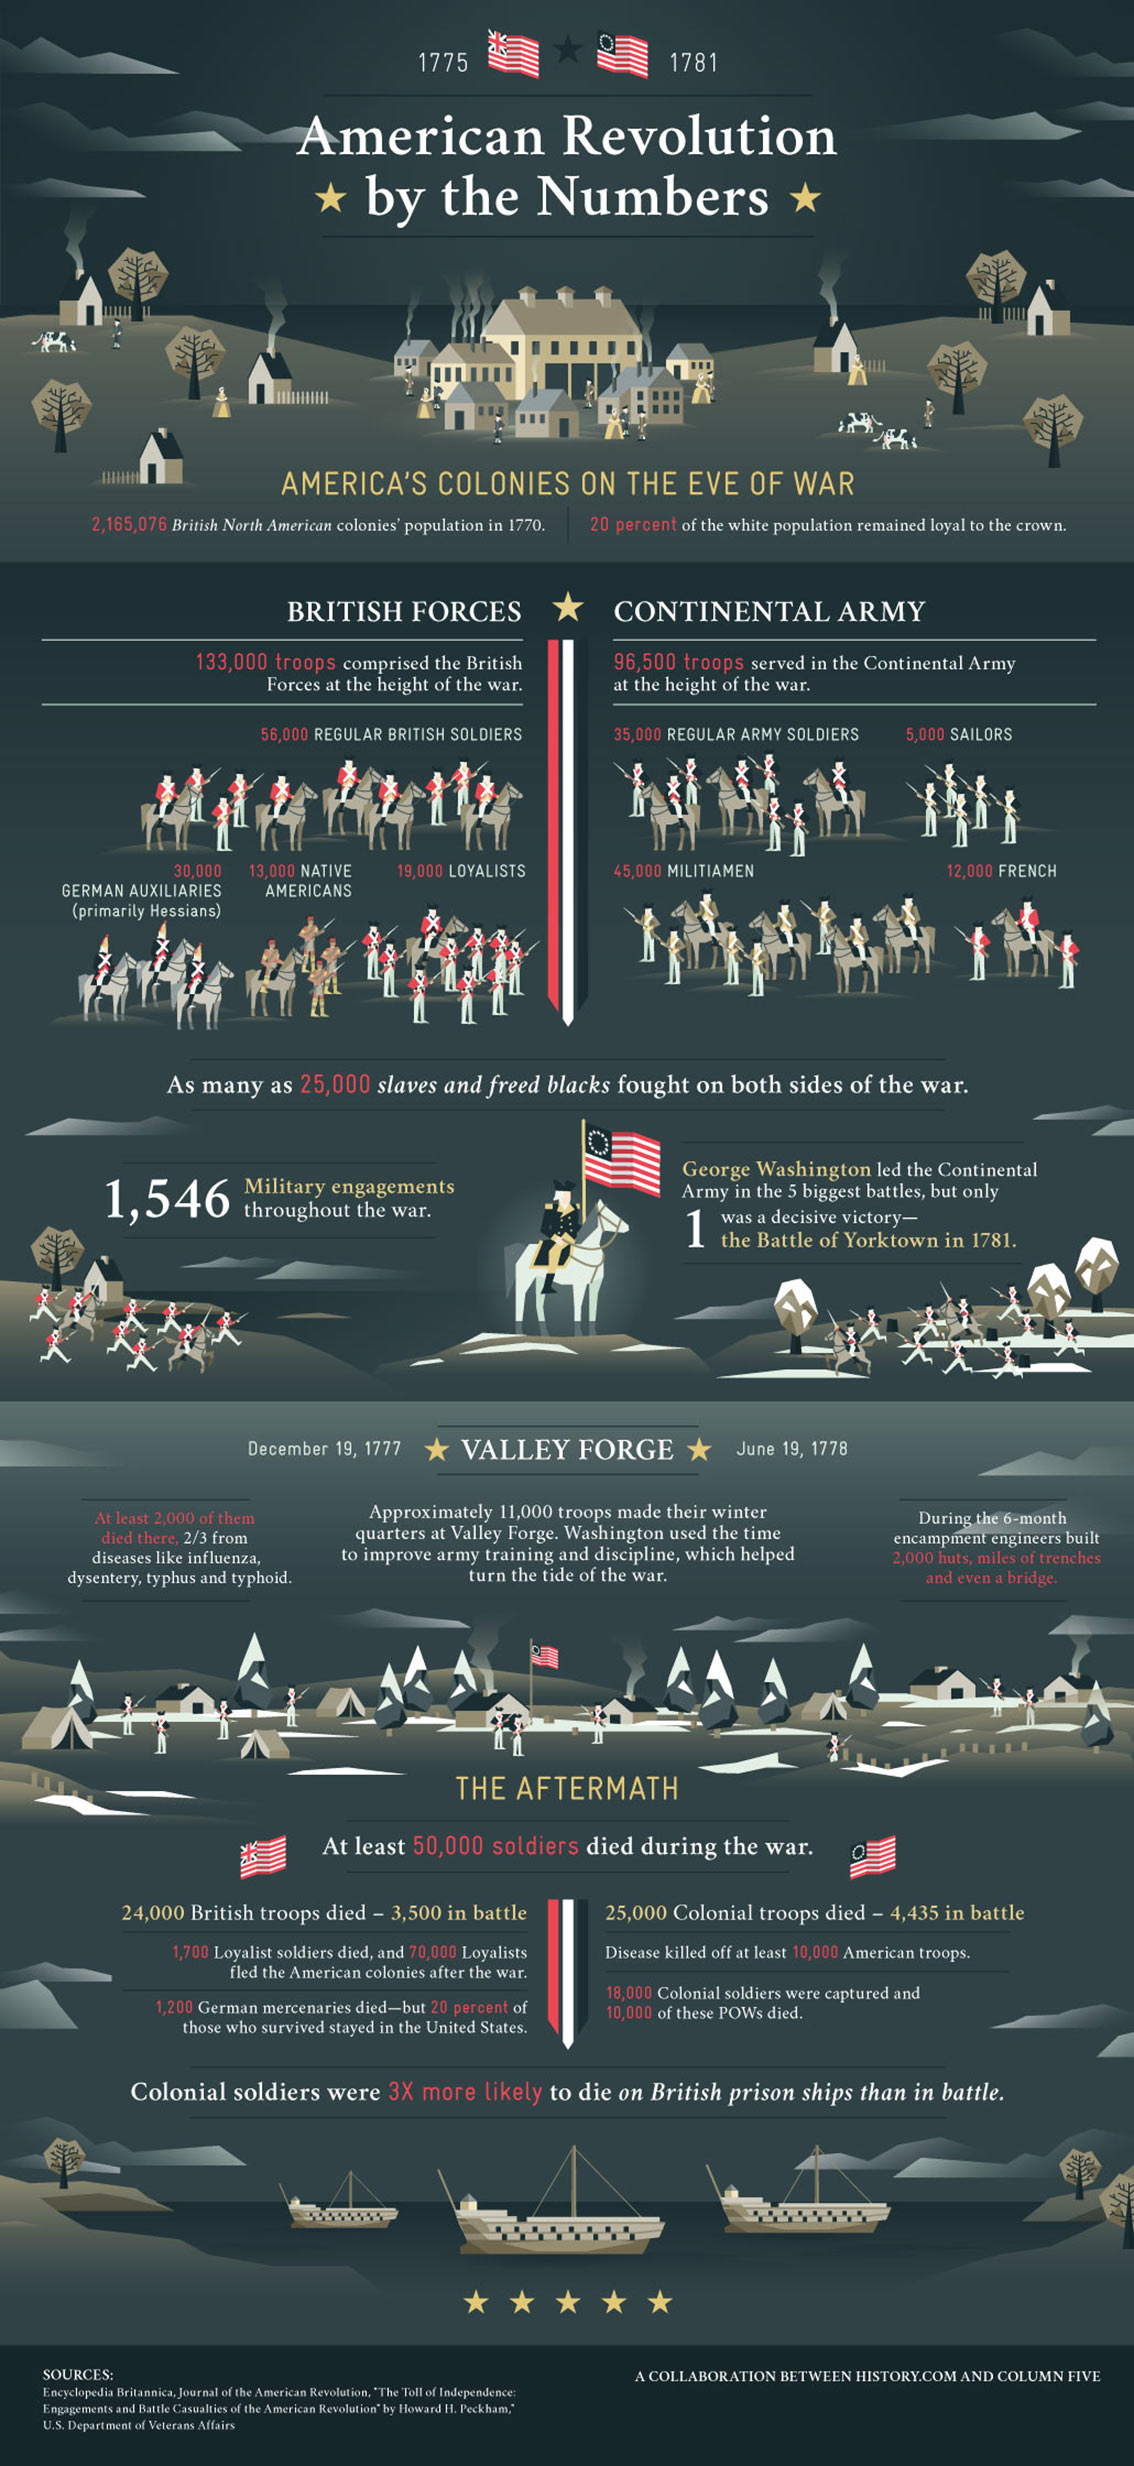 Casualties of American Revolution Infographic